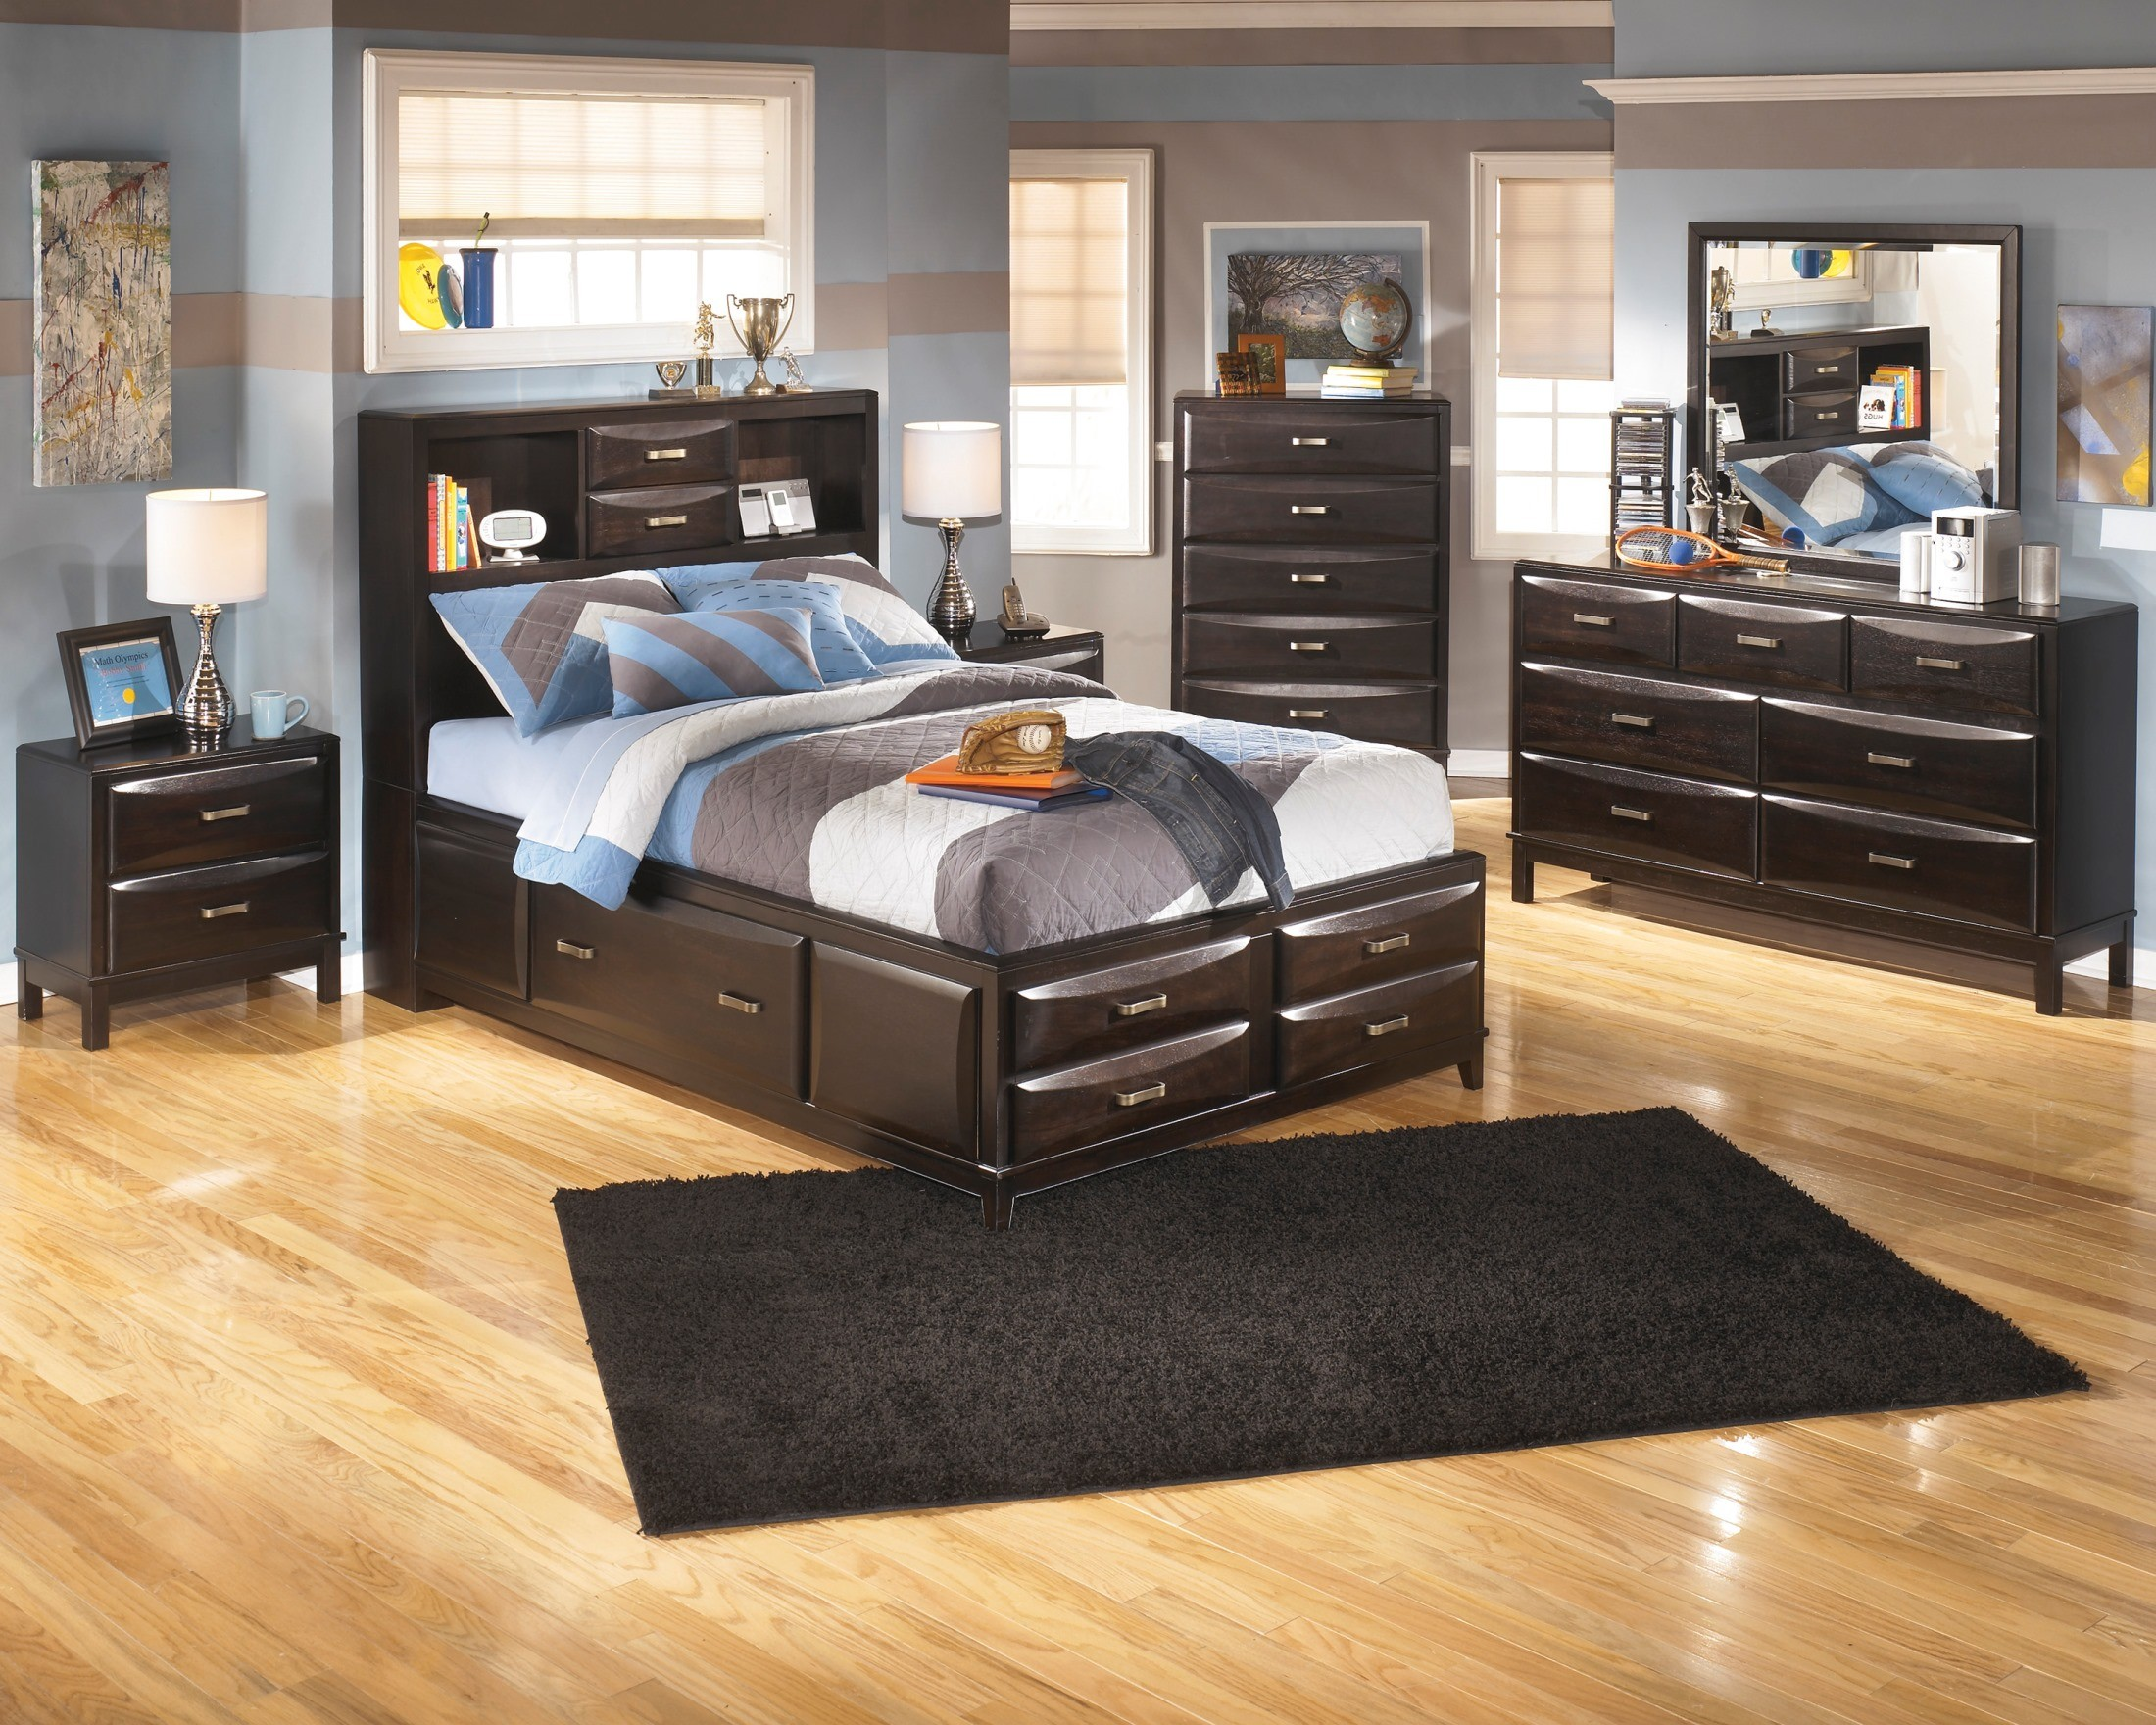 Kira Full Storage Bed From Ashley B473 77 74 88 Coleman Furniture